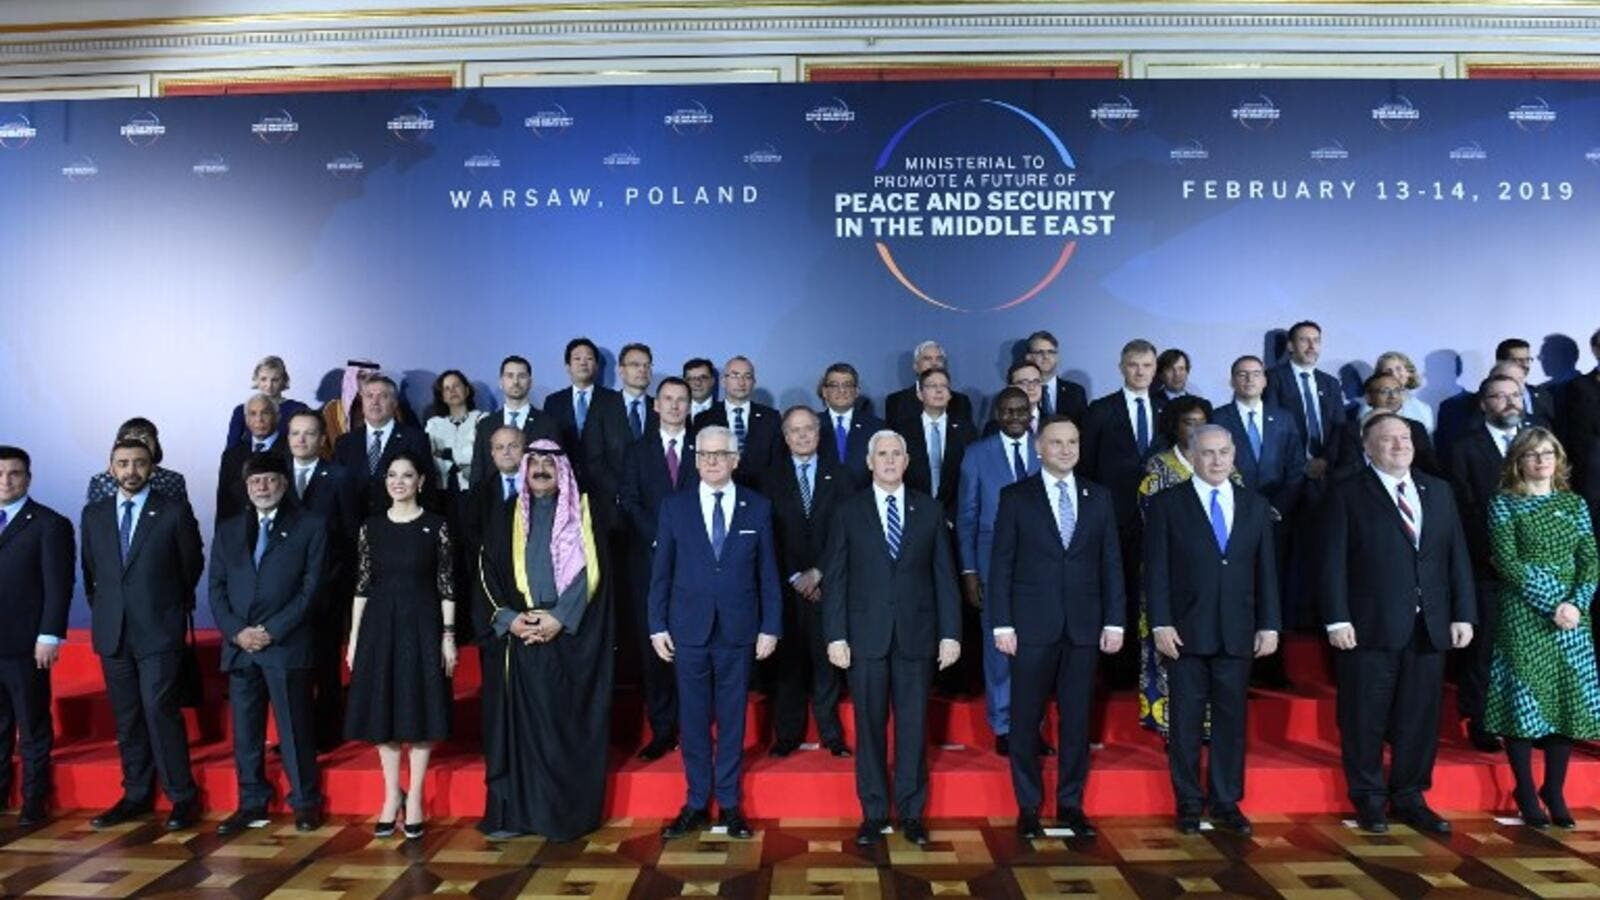 The conference on Peace and Security in the Middle east in Warsaw, on February 13, 2019. (Janek SKARZYNSKI / AFP)